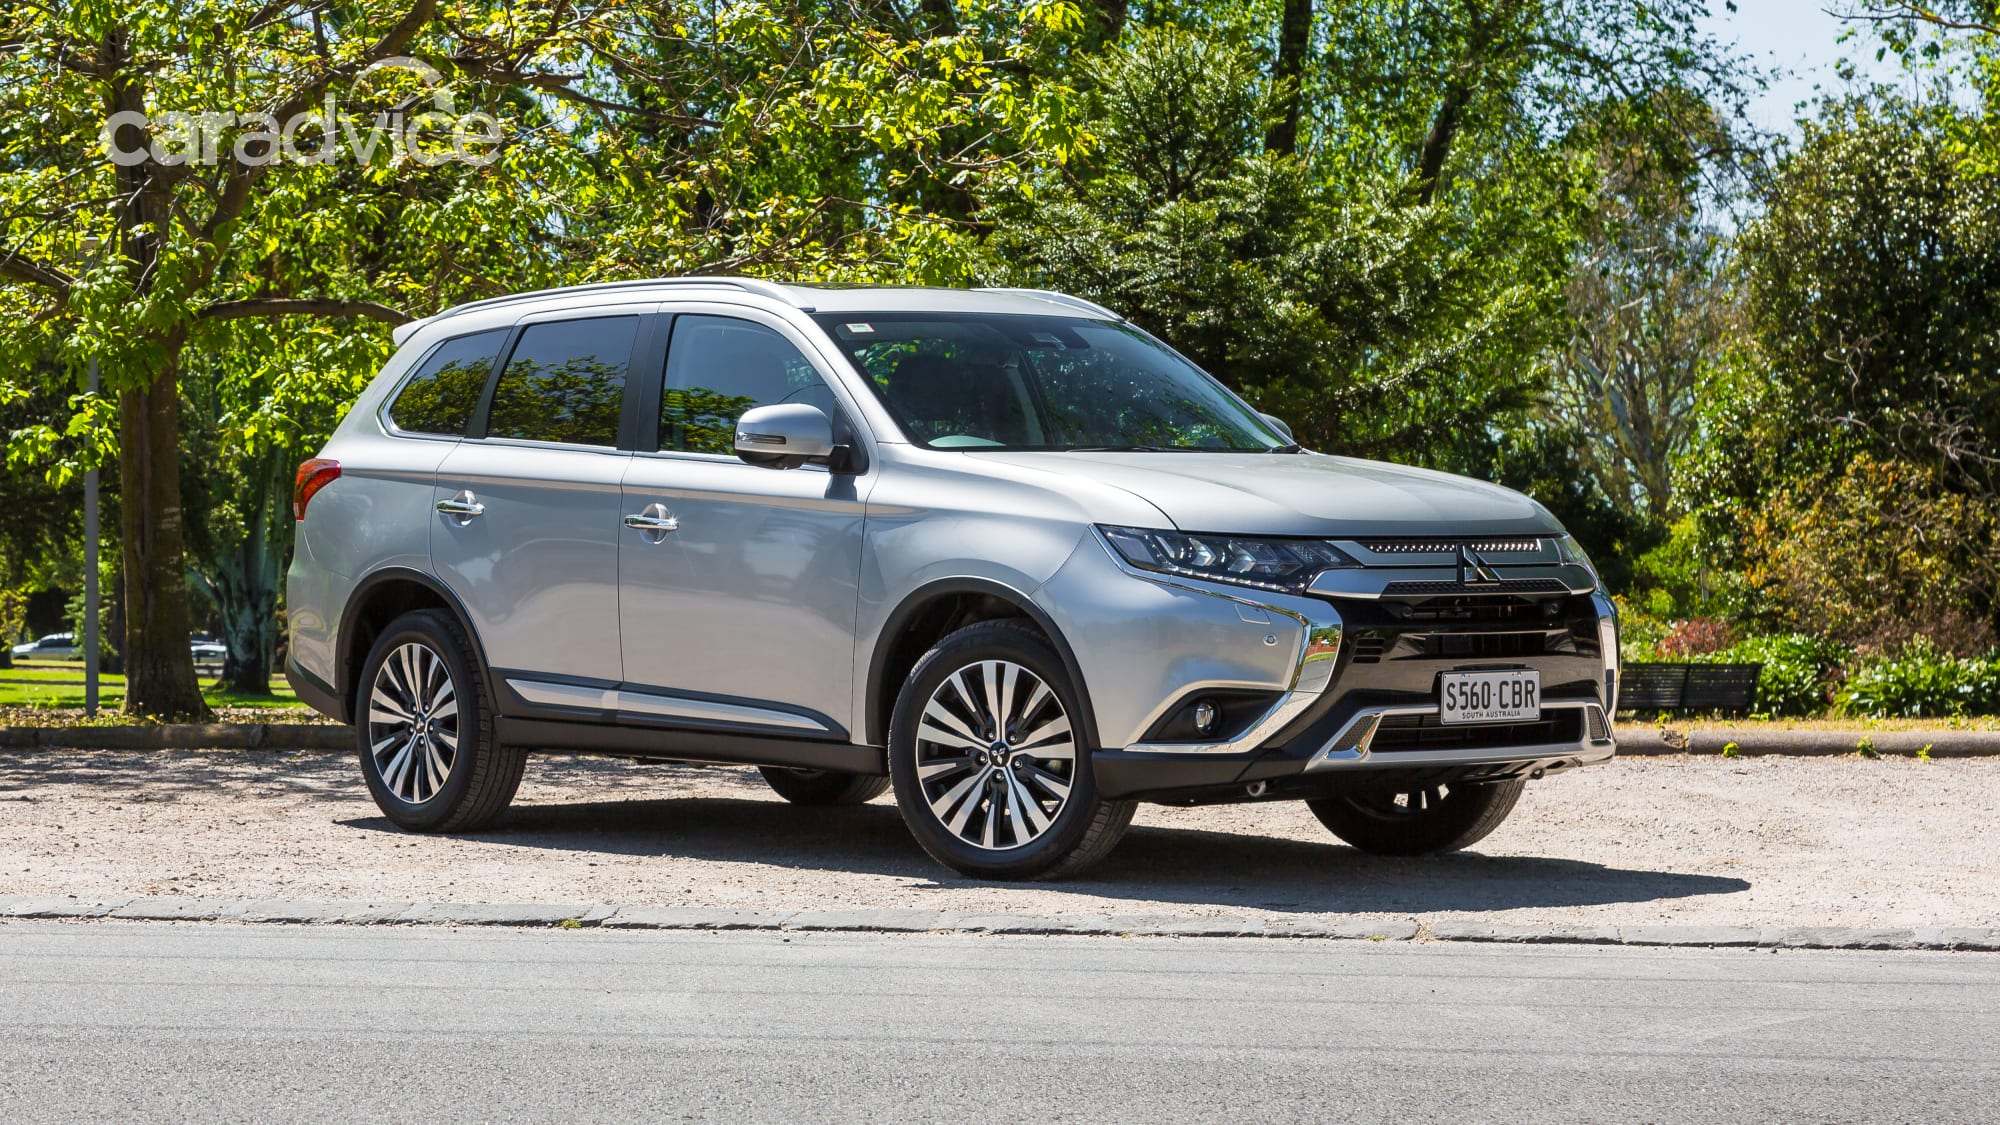 2020 mitsubishi outlander exceed review   caradvice